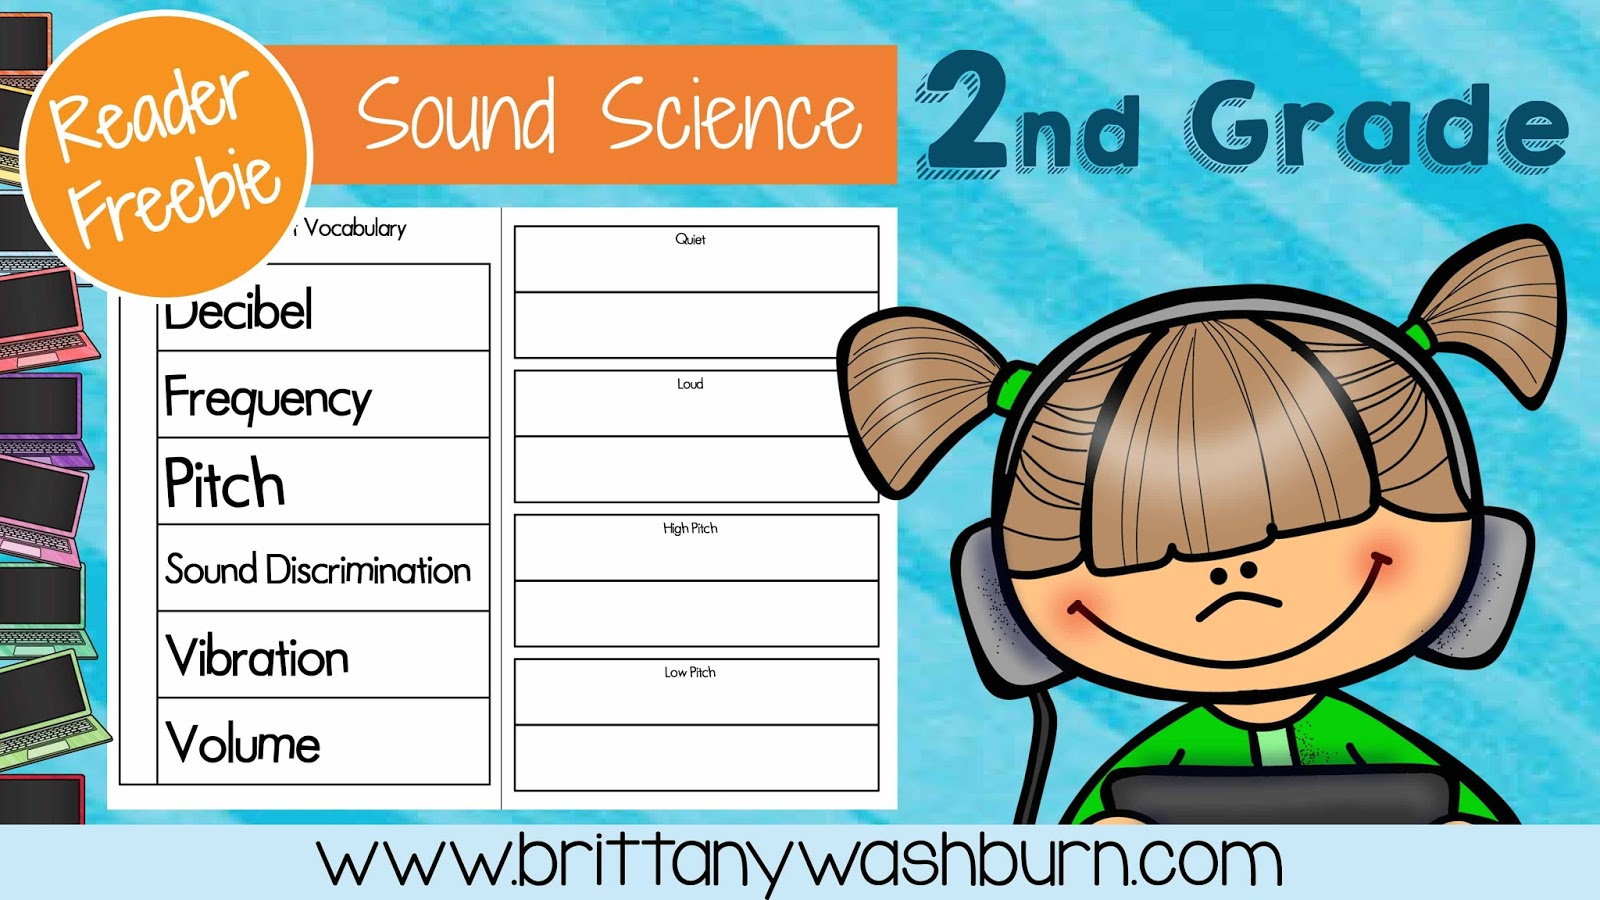 Technology Teaching Resources With Brittany Washburn 2nd